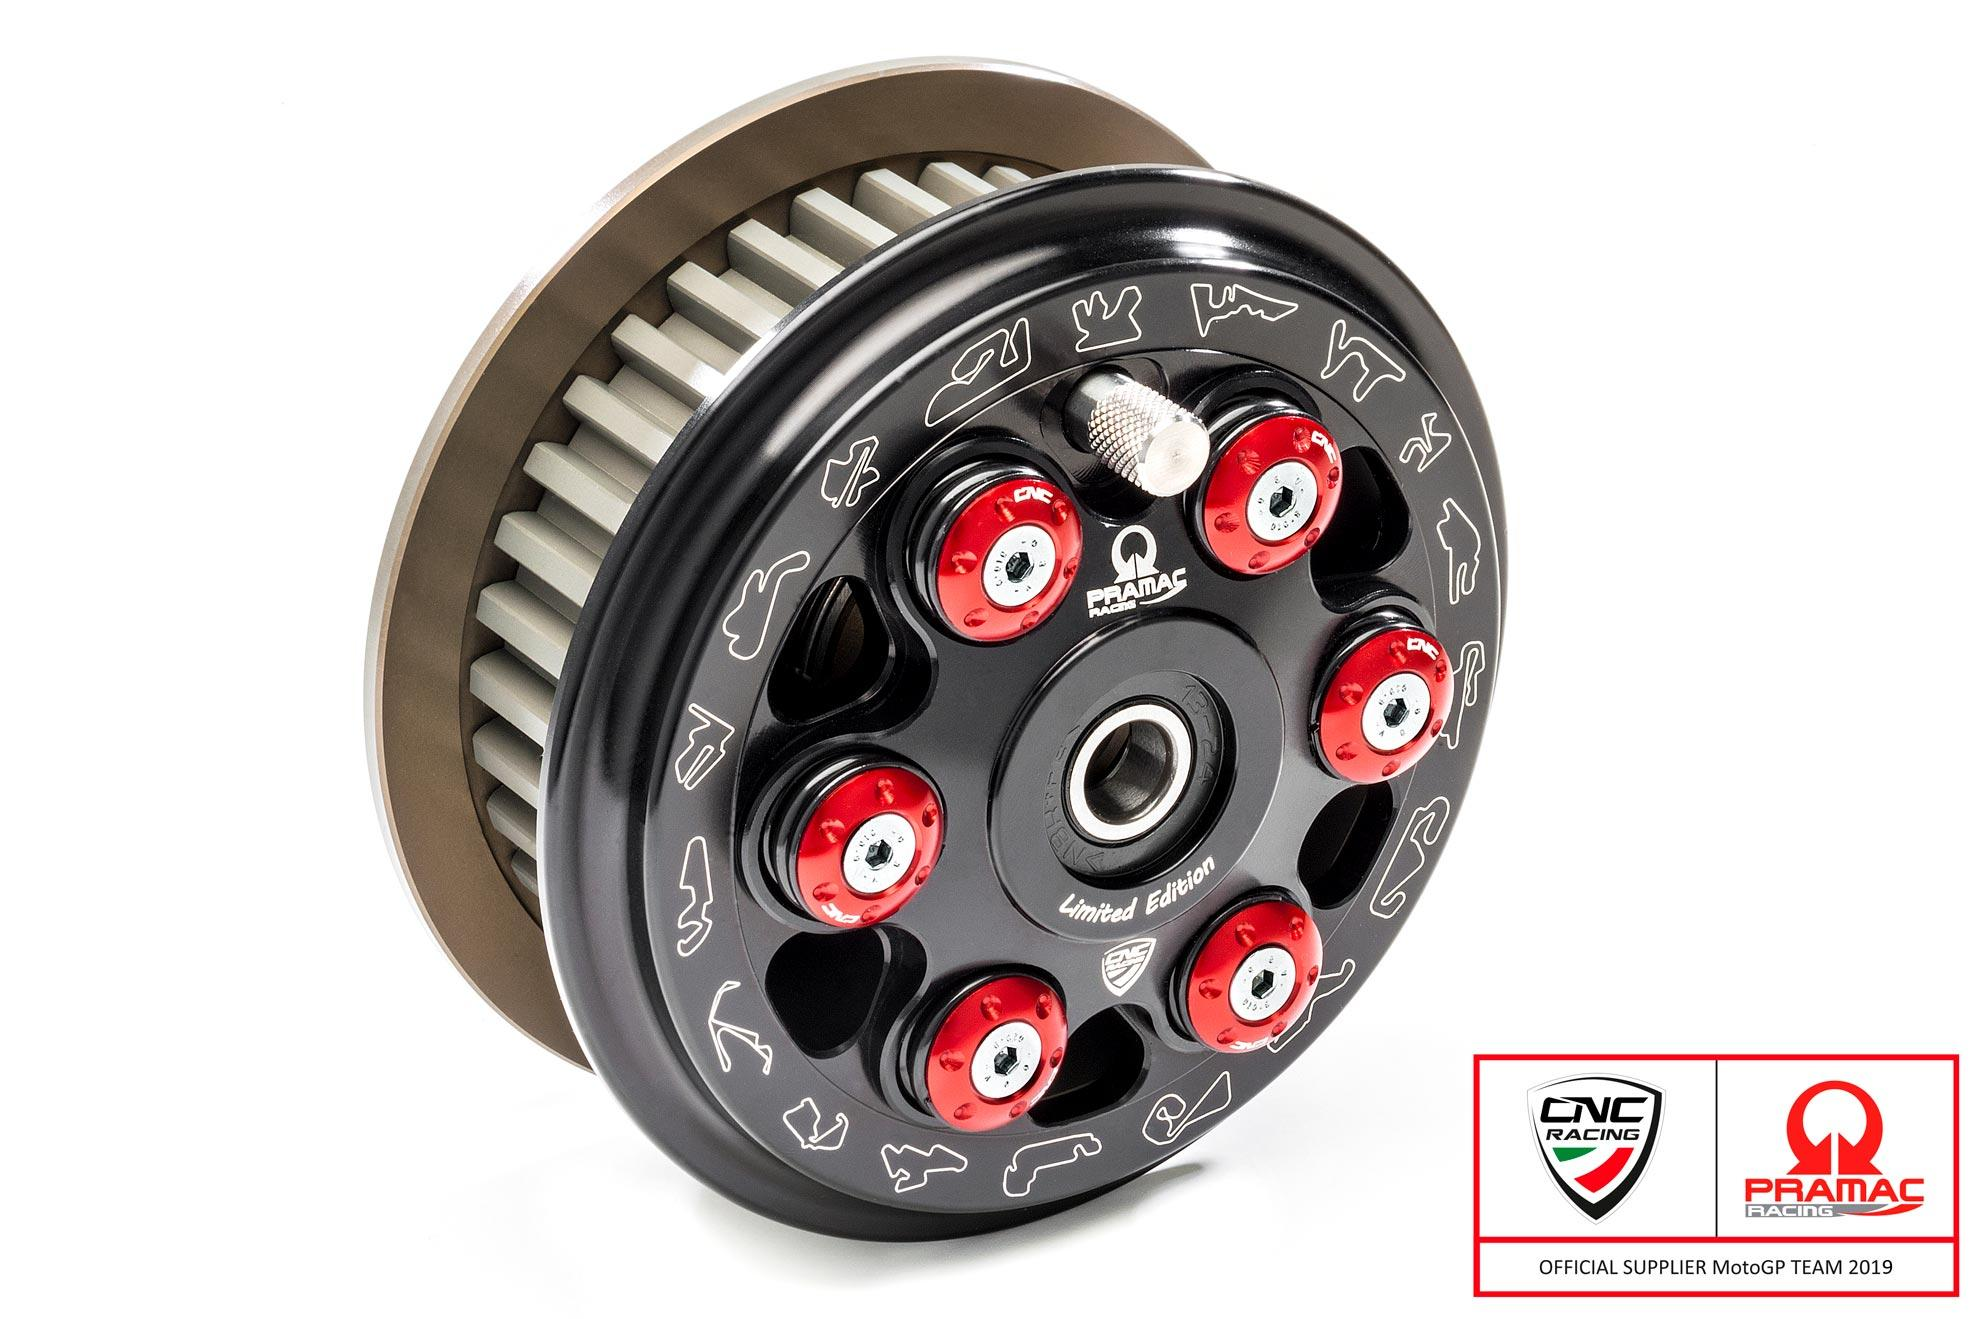 CNC Racing Pramac Slipper Clutch - Ducati, Slipper Clutch, CNC Racing - Averys Motorcycles